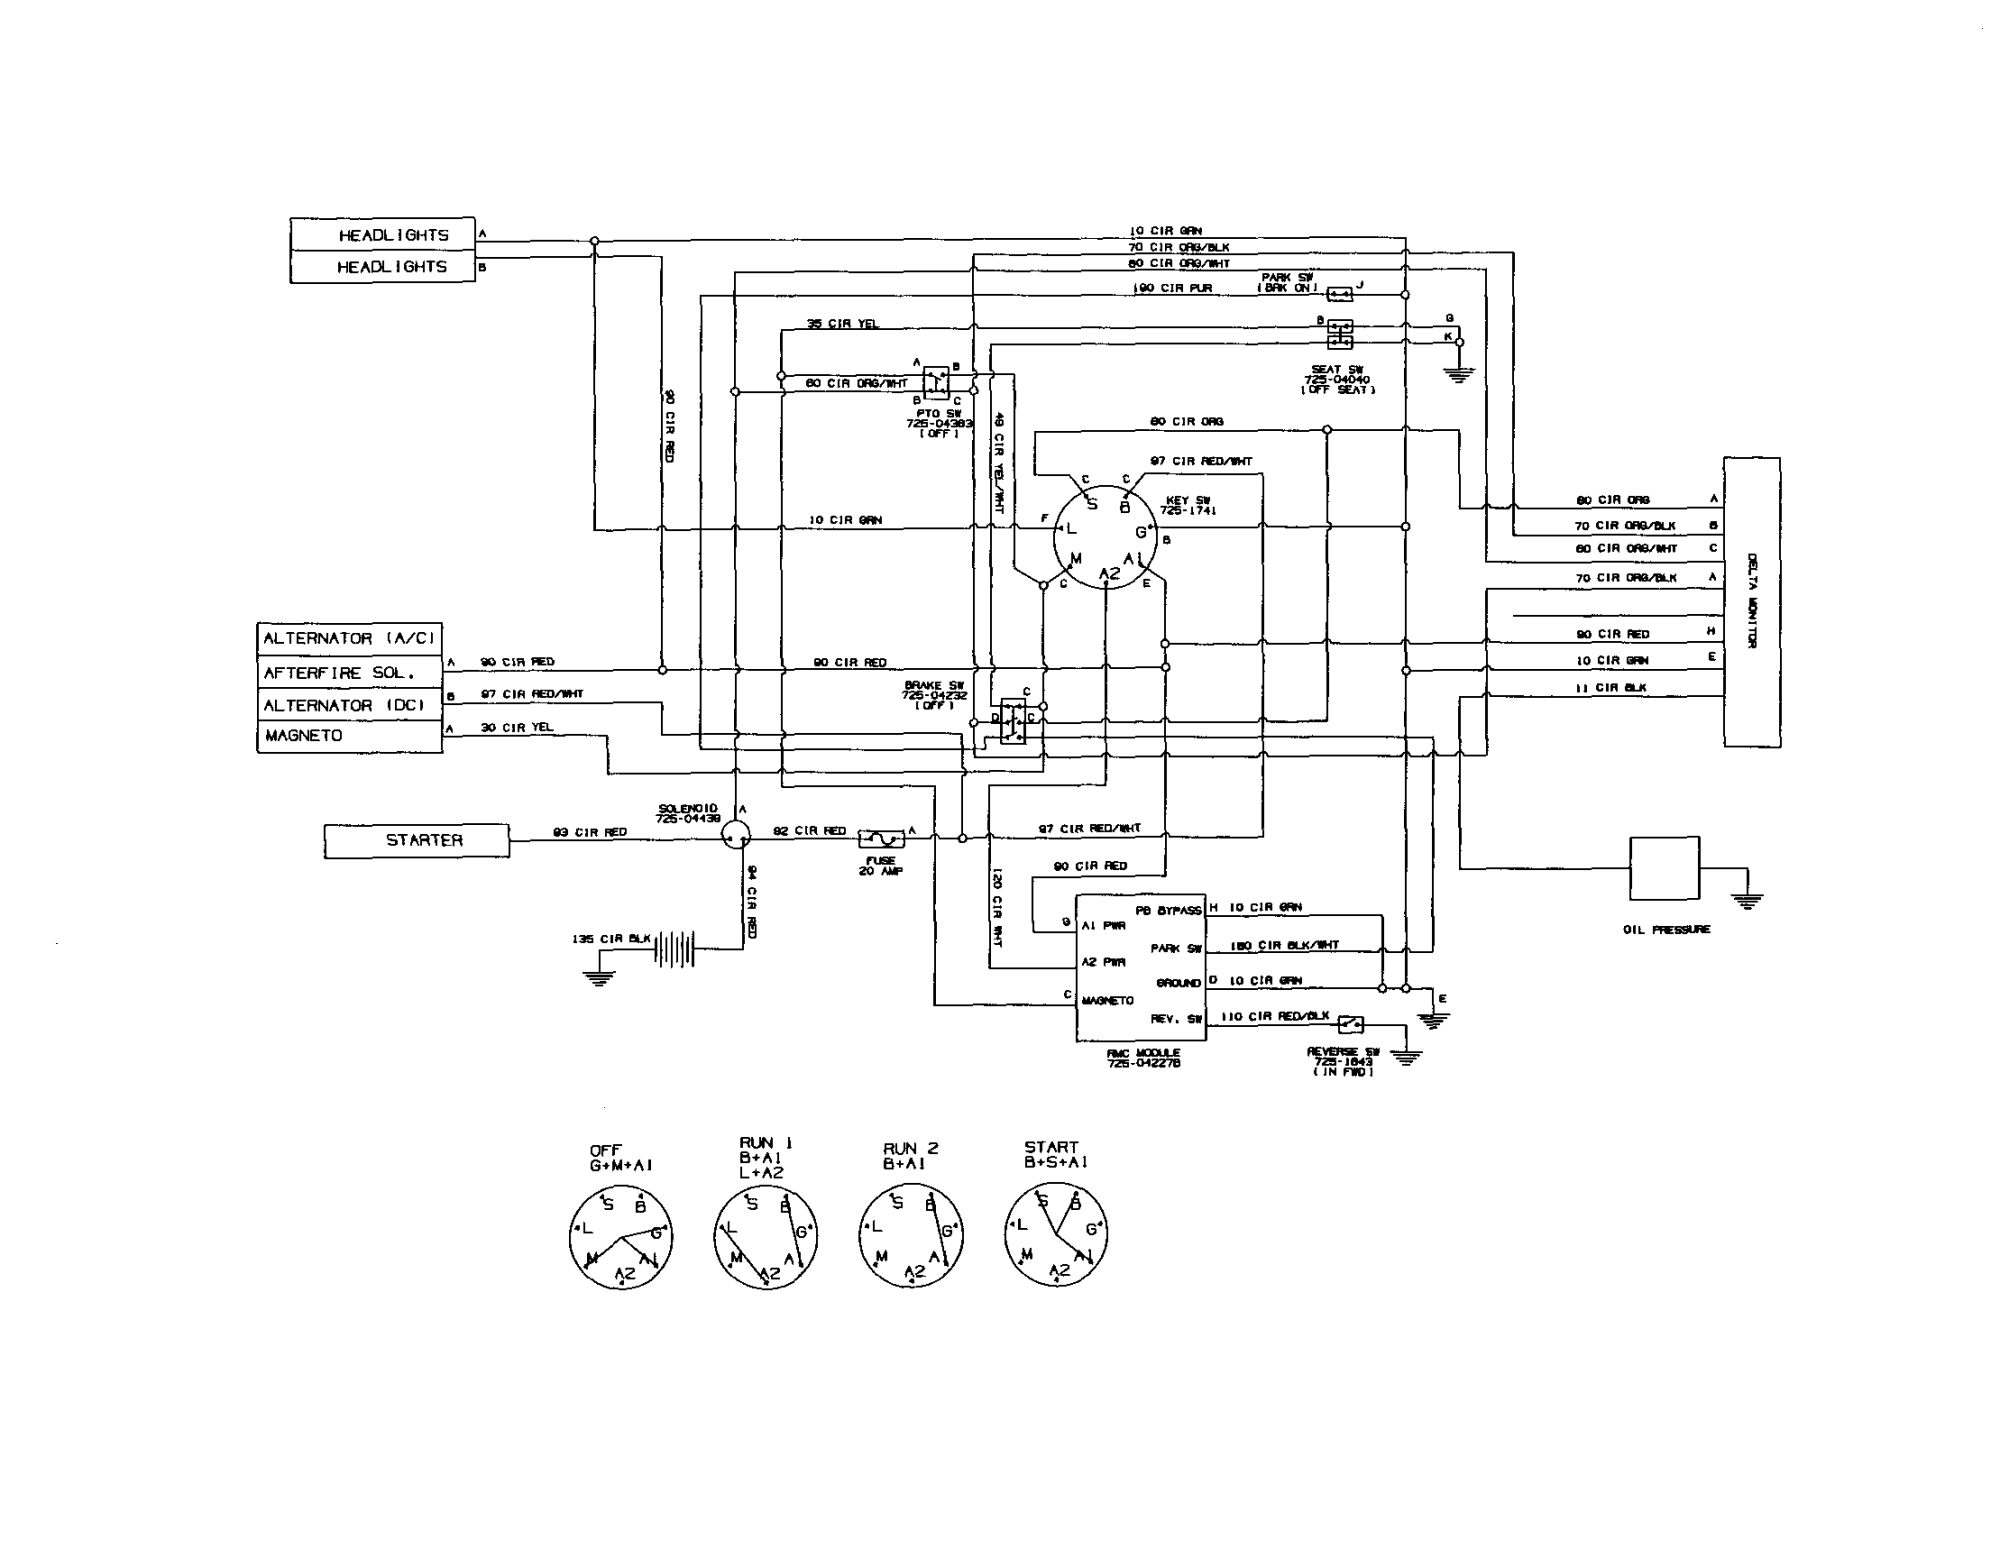 hight resolution of mtd wiring schematic wiring diagram looking for mtd model 13ax90yt001 front engine lawn tractor repairmtd 13ax90yt001